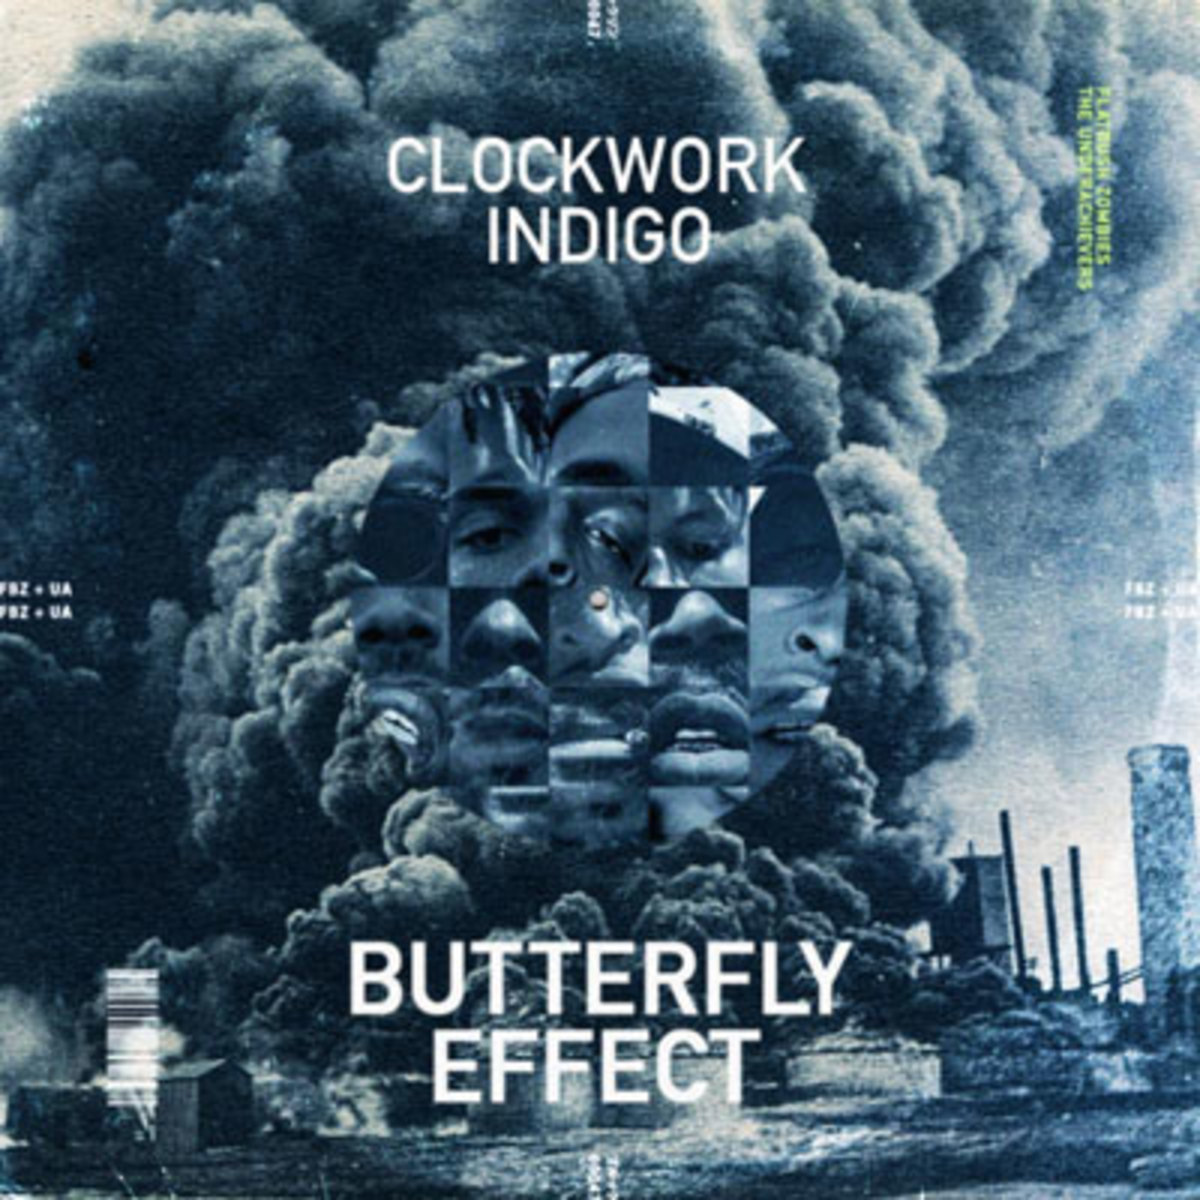 clockworkindigo-butterfly.jpg